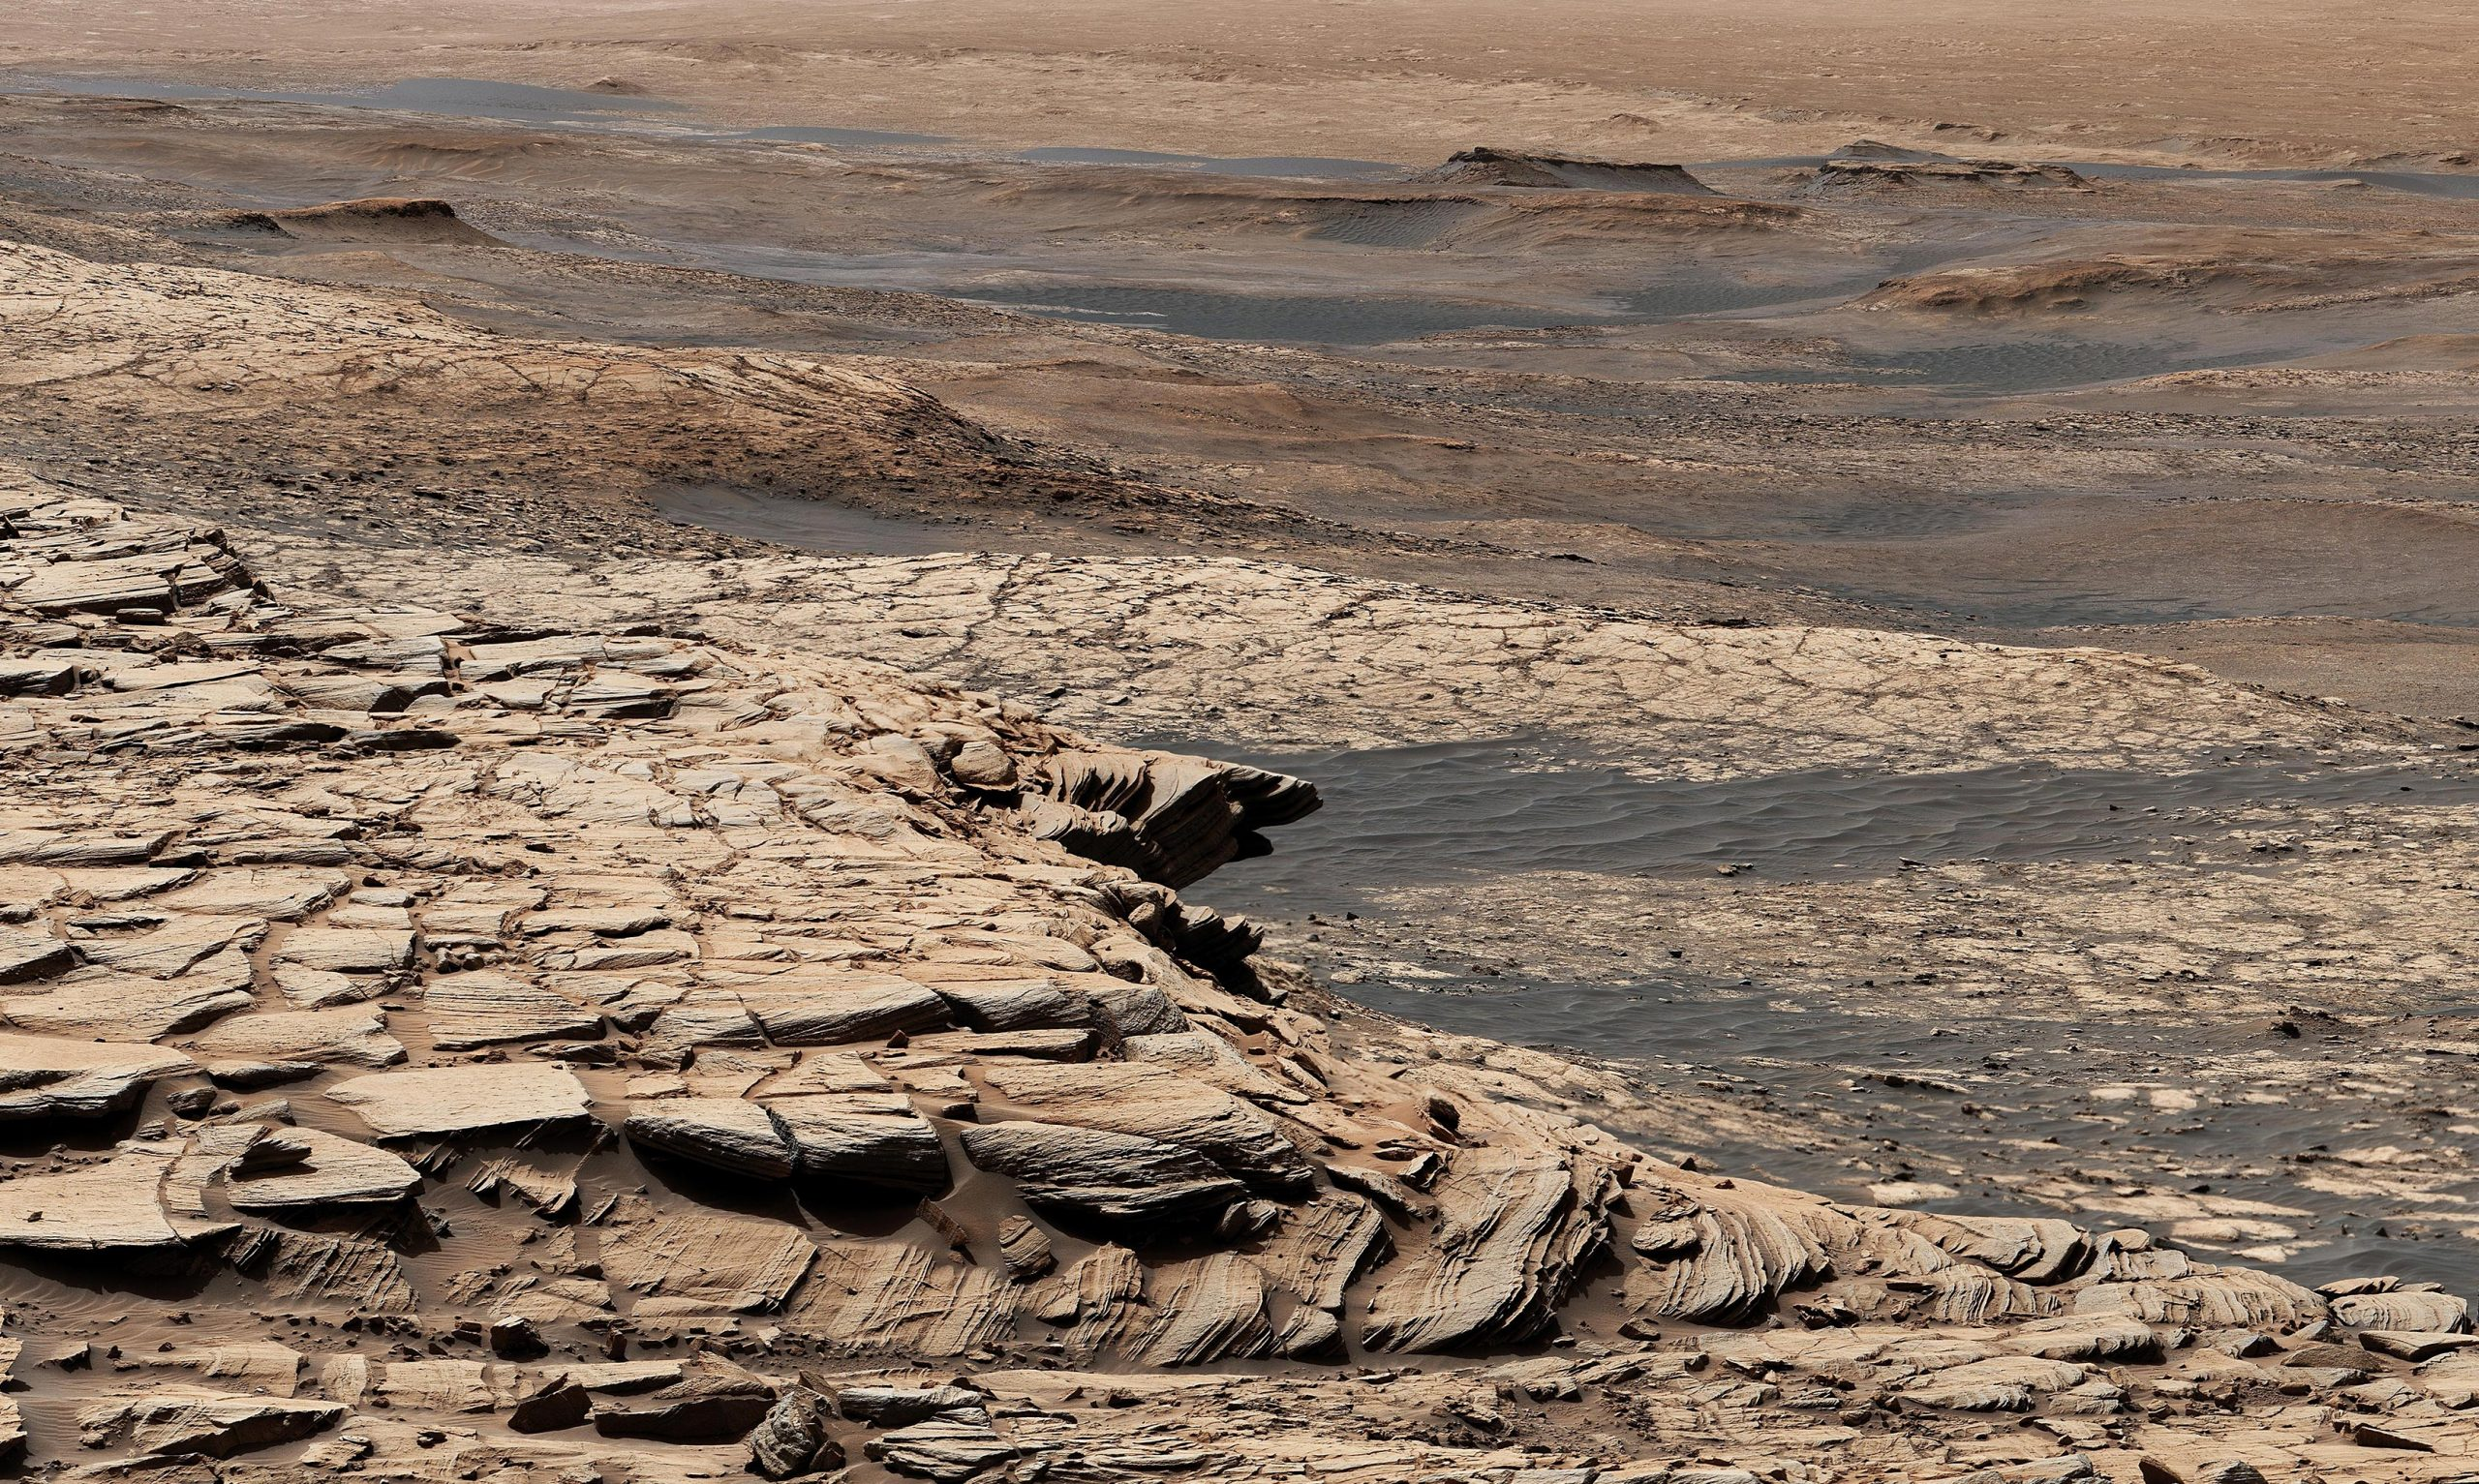 Curiosity rover view of a clay-rich unit in Gale Crater, taken on April 9, 2020